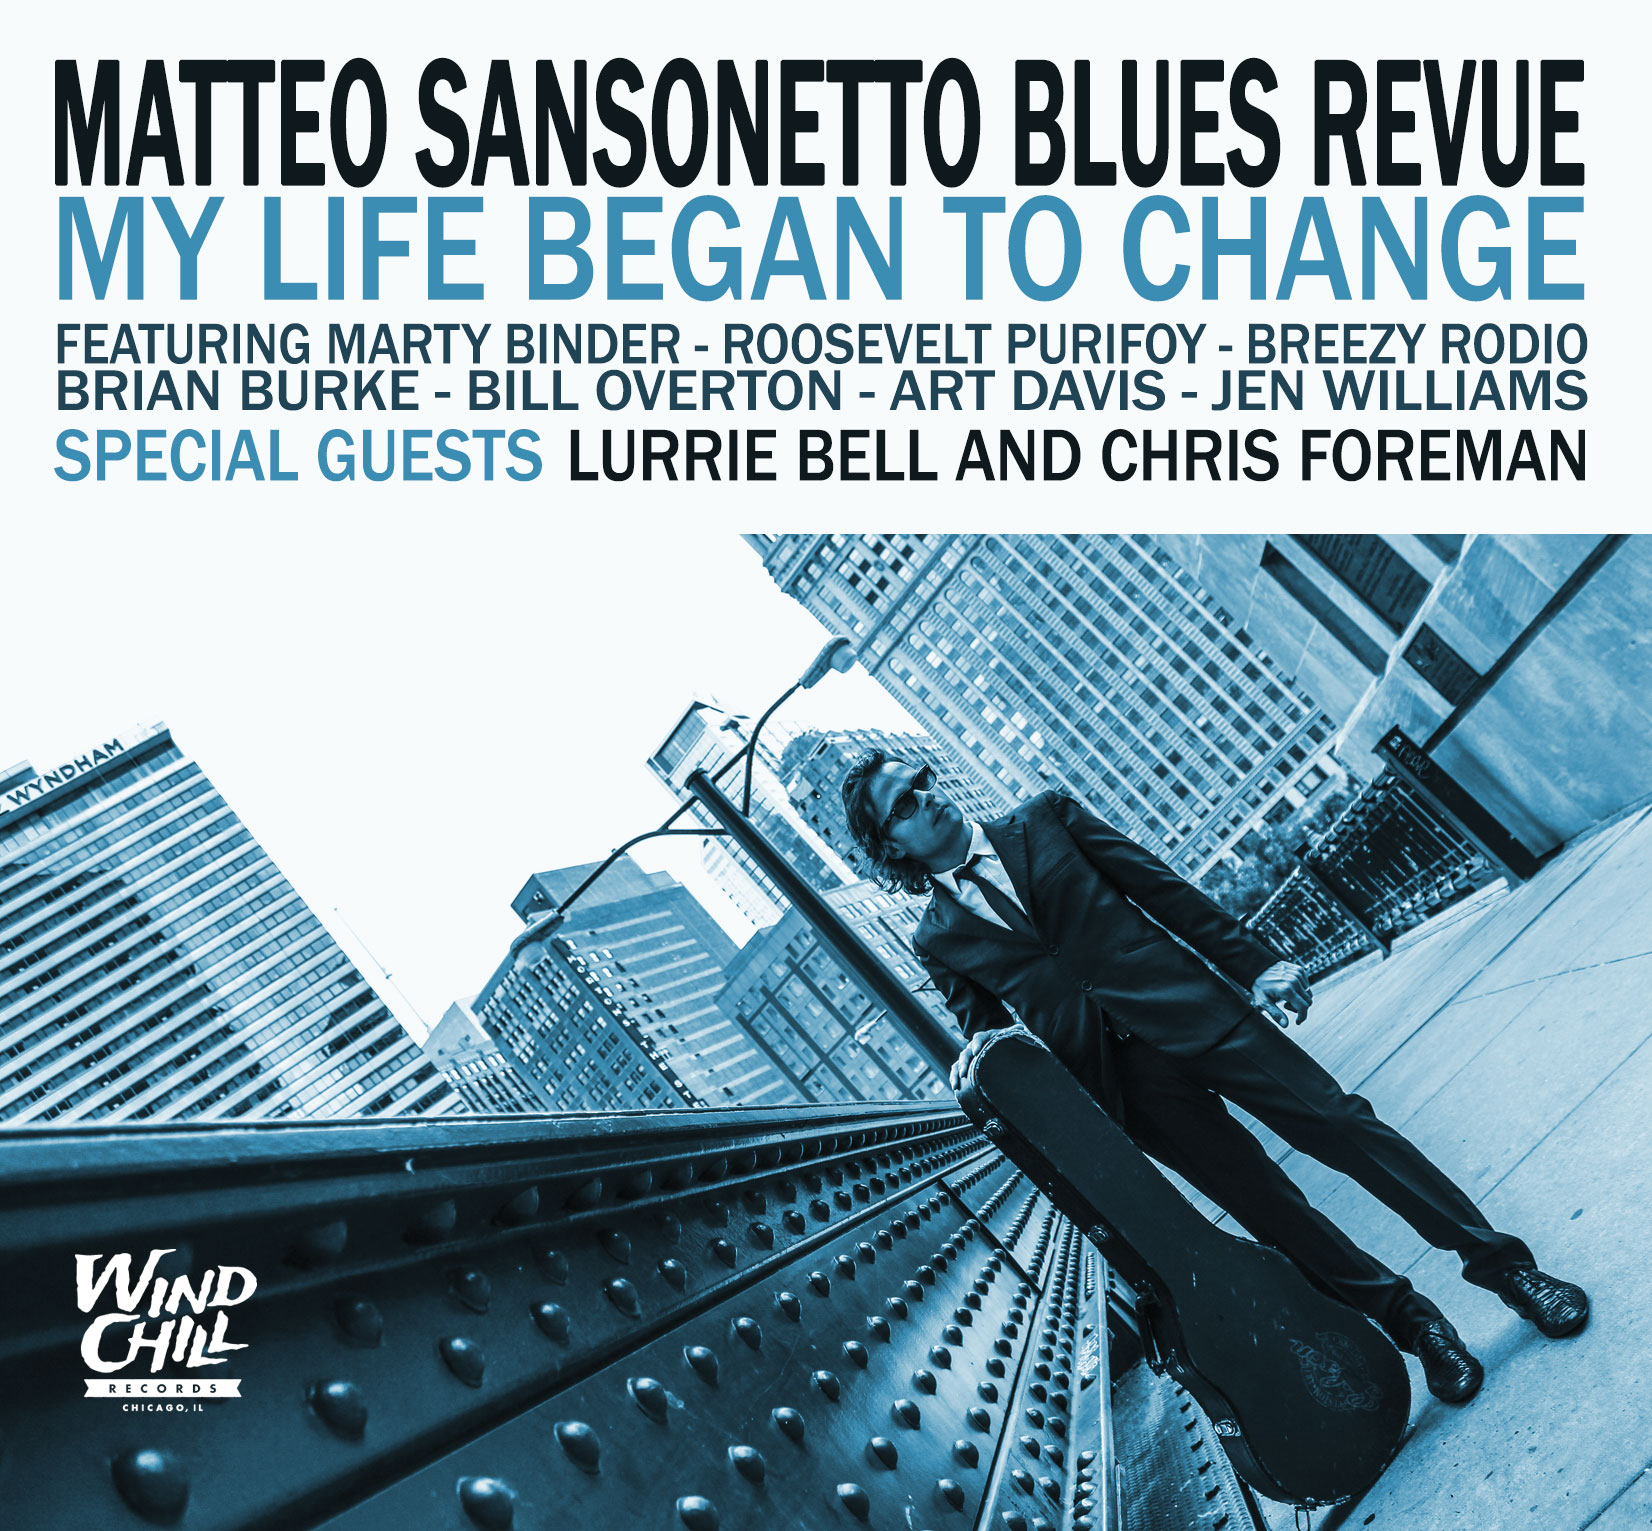 Matteo Sansonetto Blues Revue: My Life Began To Change